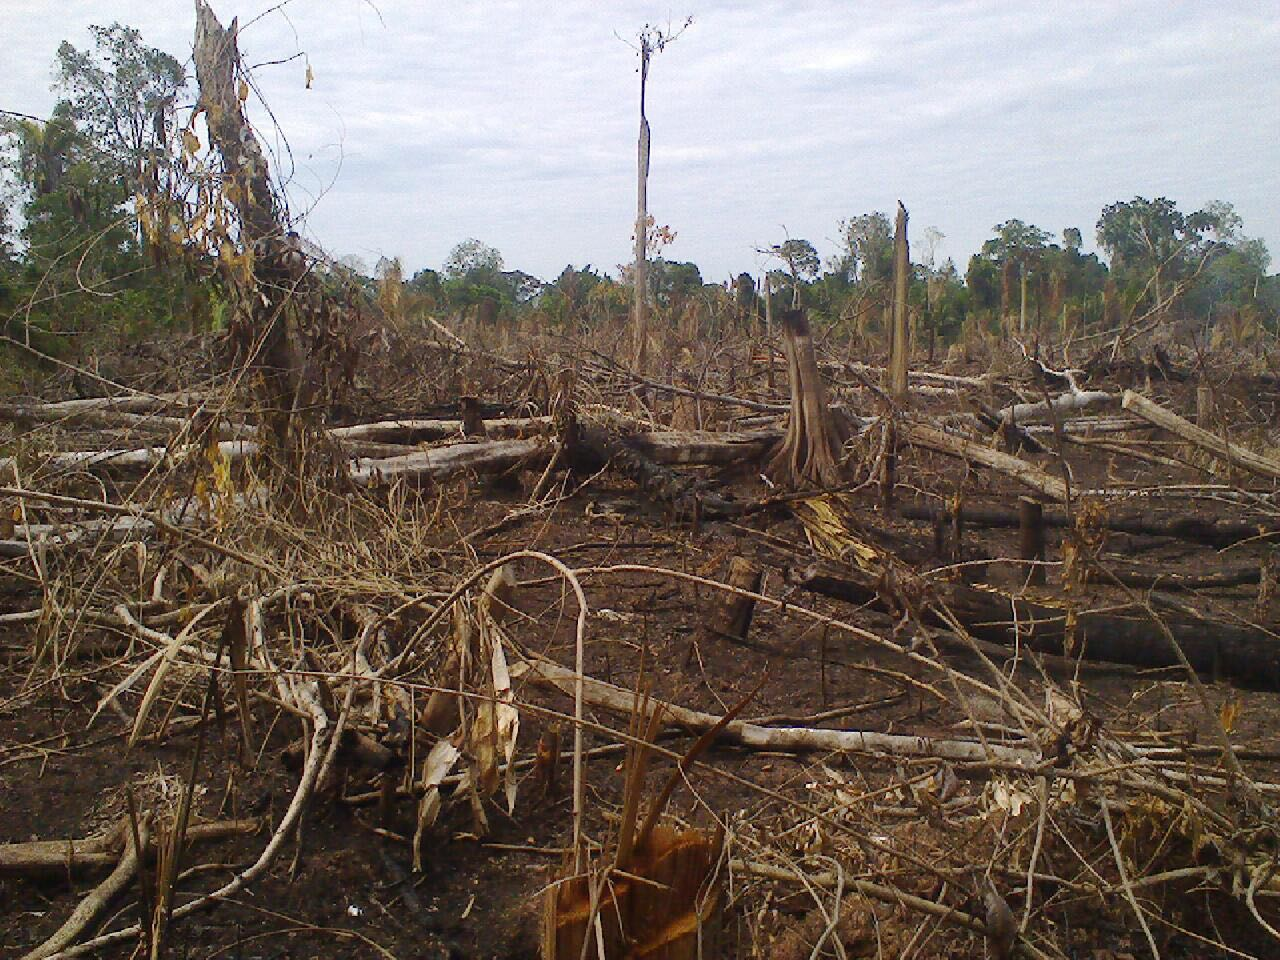 Peruvian Melka group palm oil production company withdraws from RSPO 5c97941d01